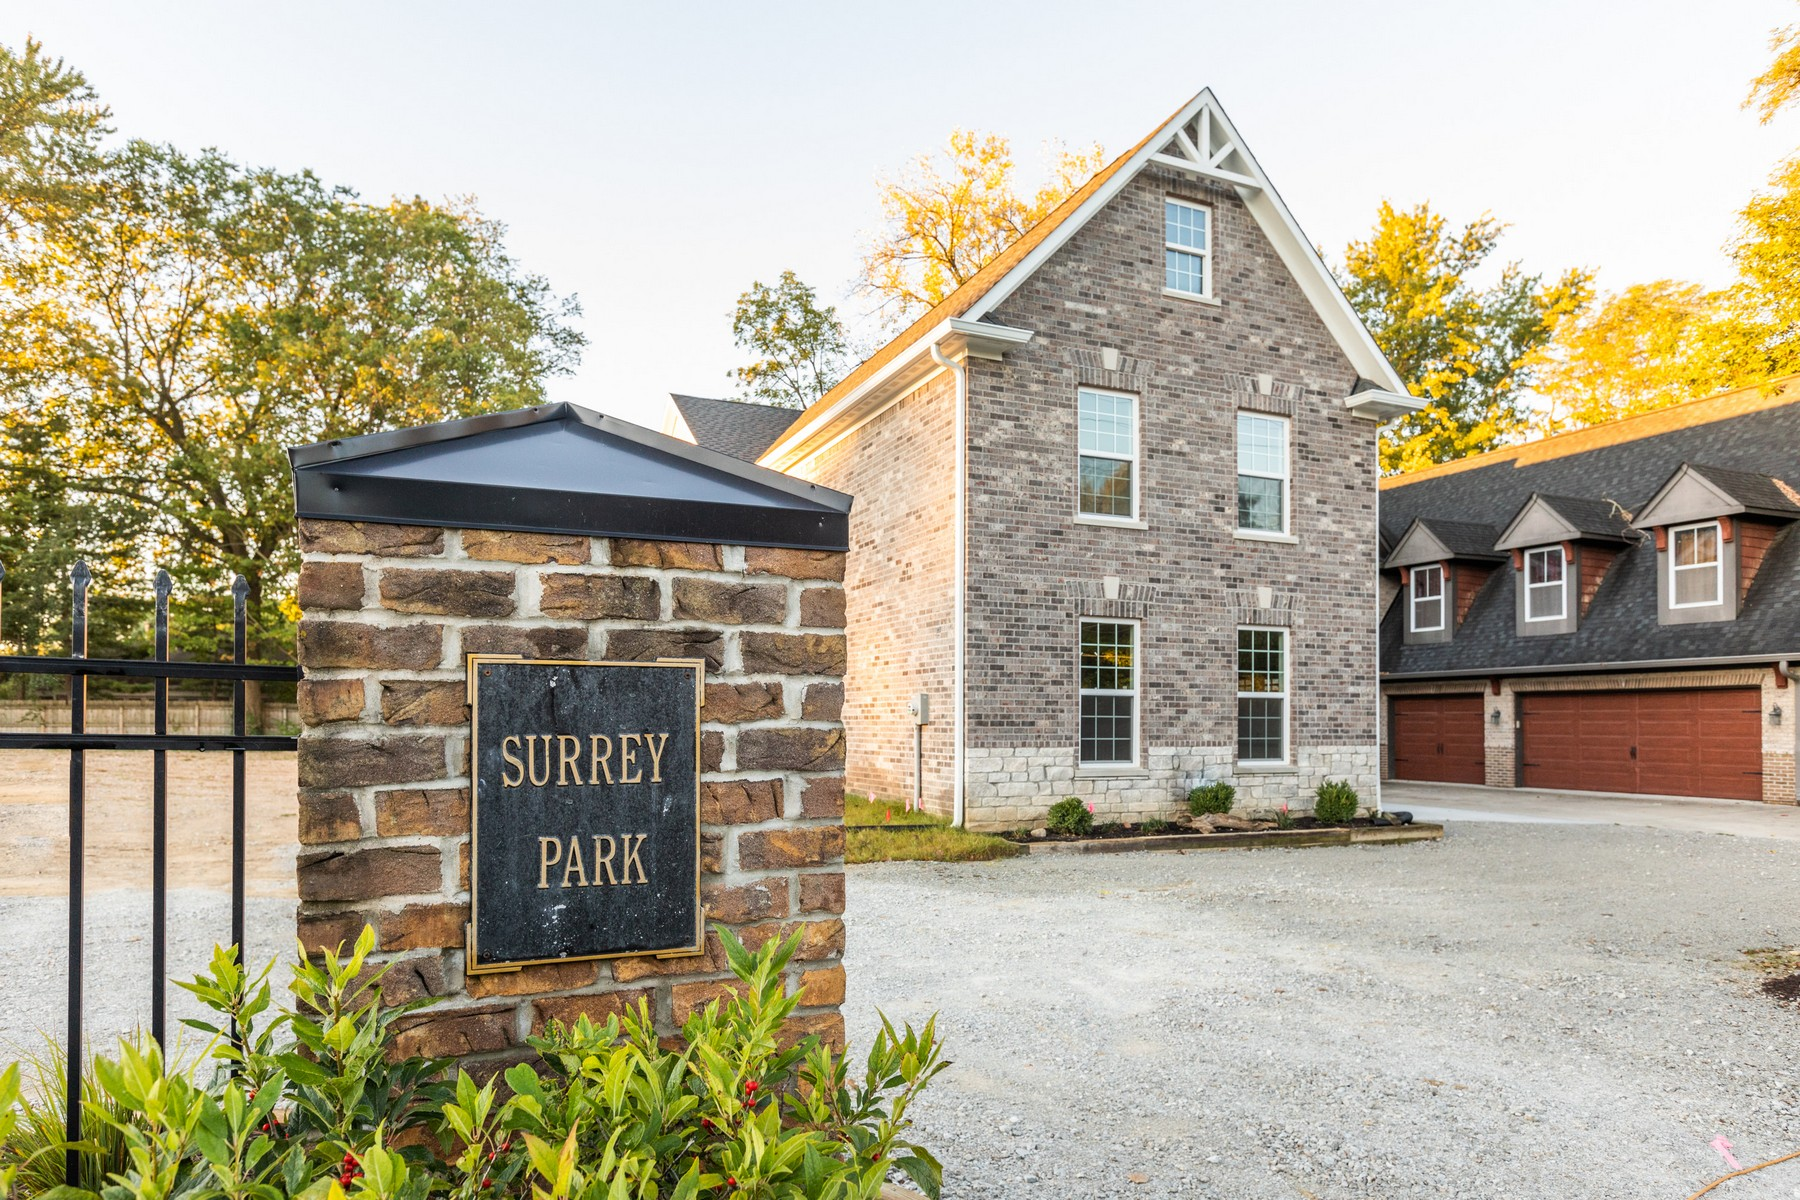 Single Family Homes for Active at New Build in Surrey Park 445 West 86th Street Indianapolis, Indiana 46260 United States